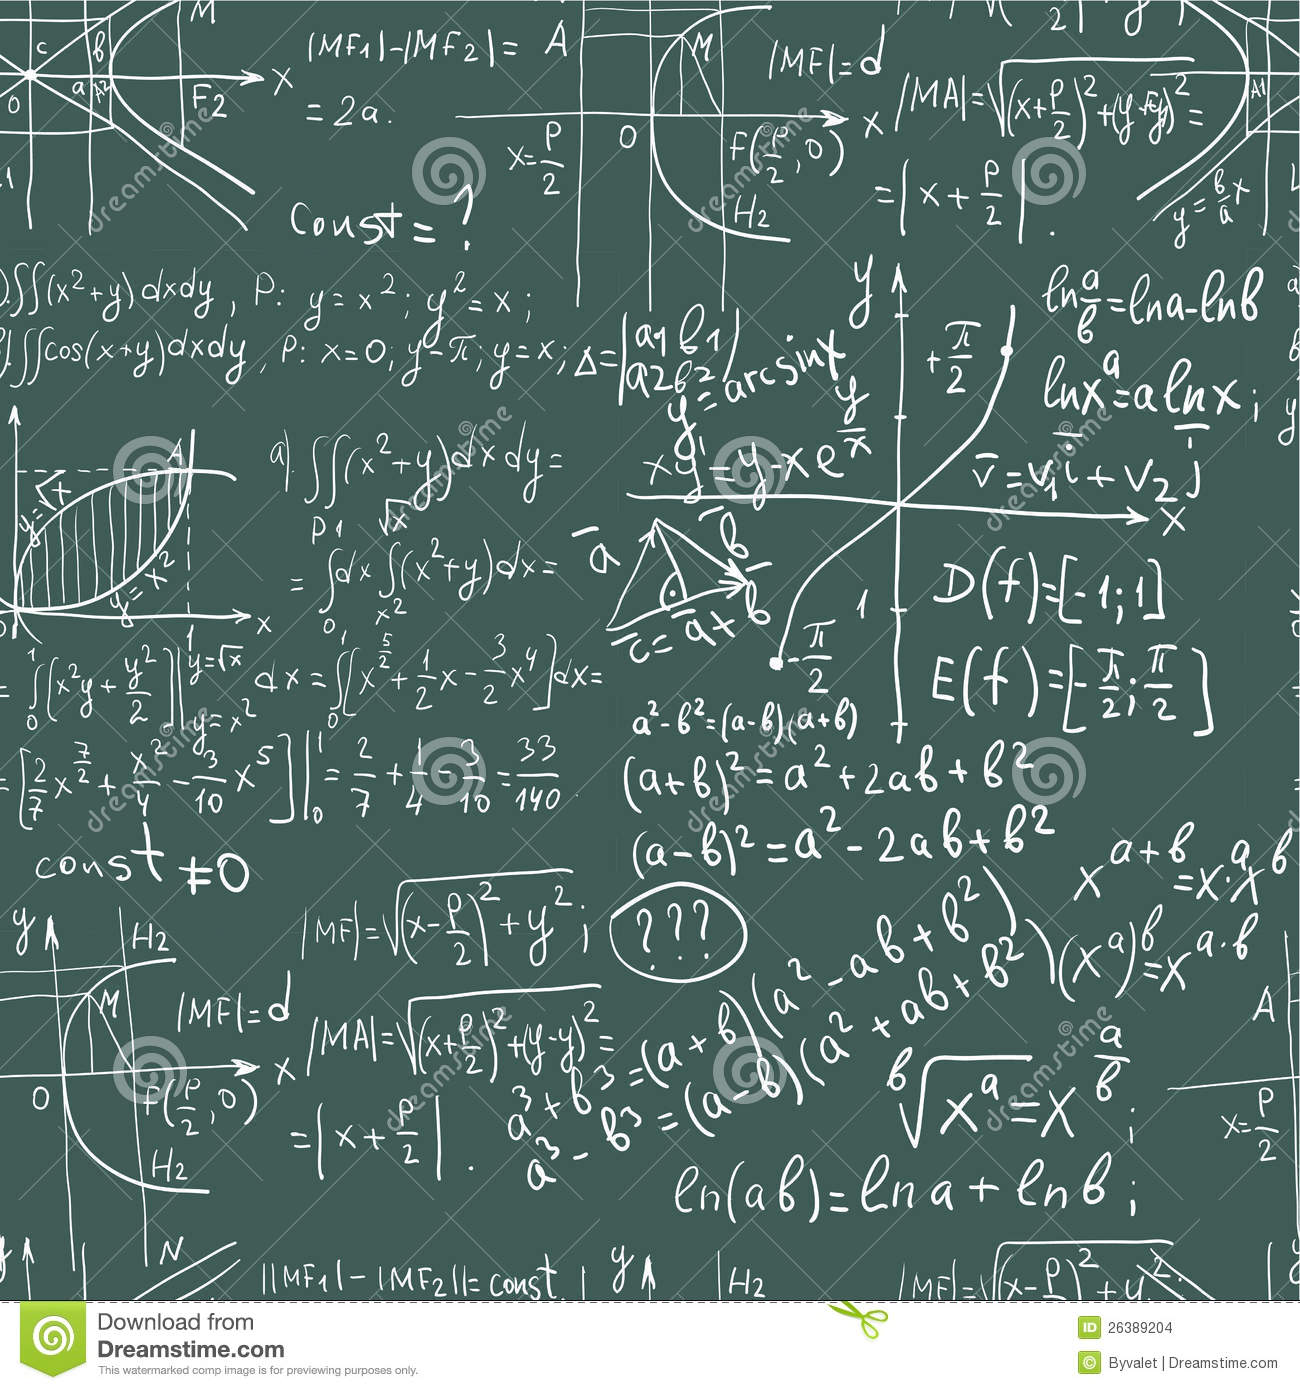 Use equations in a document